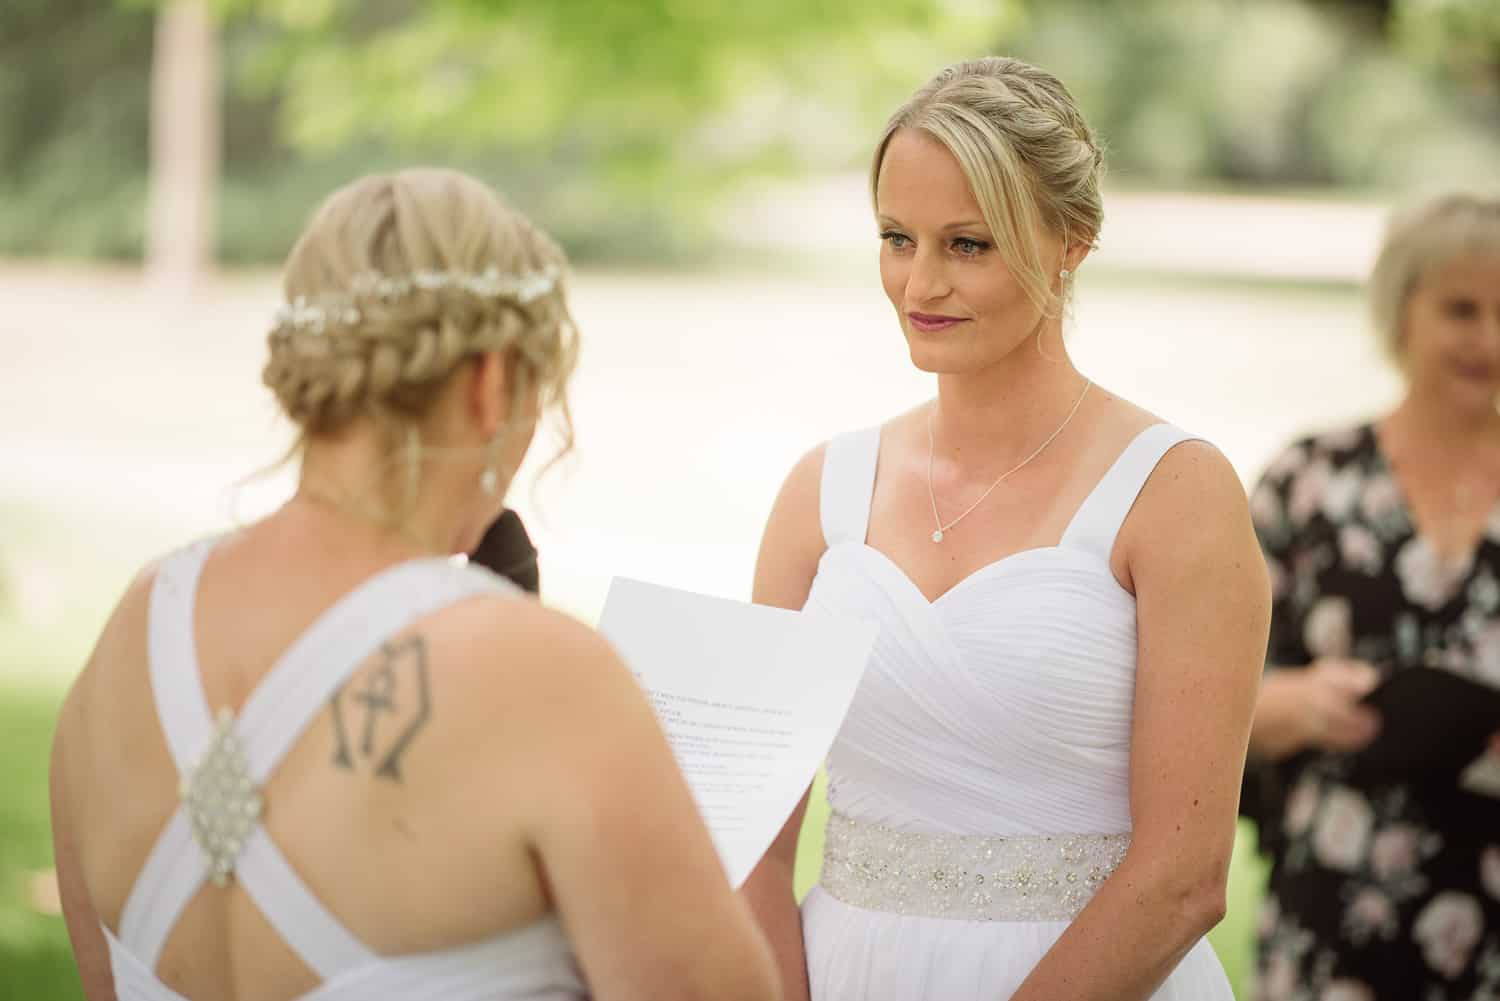 Brides exchange vows at a colac botanic garden wedding